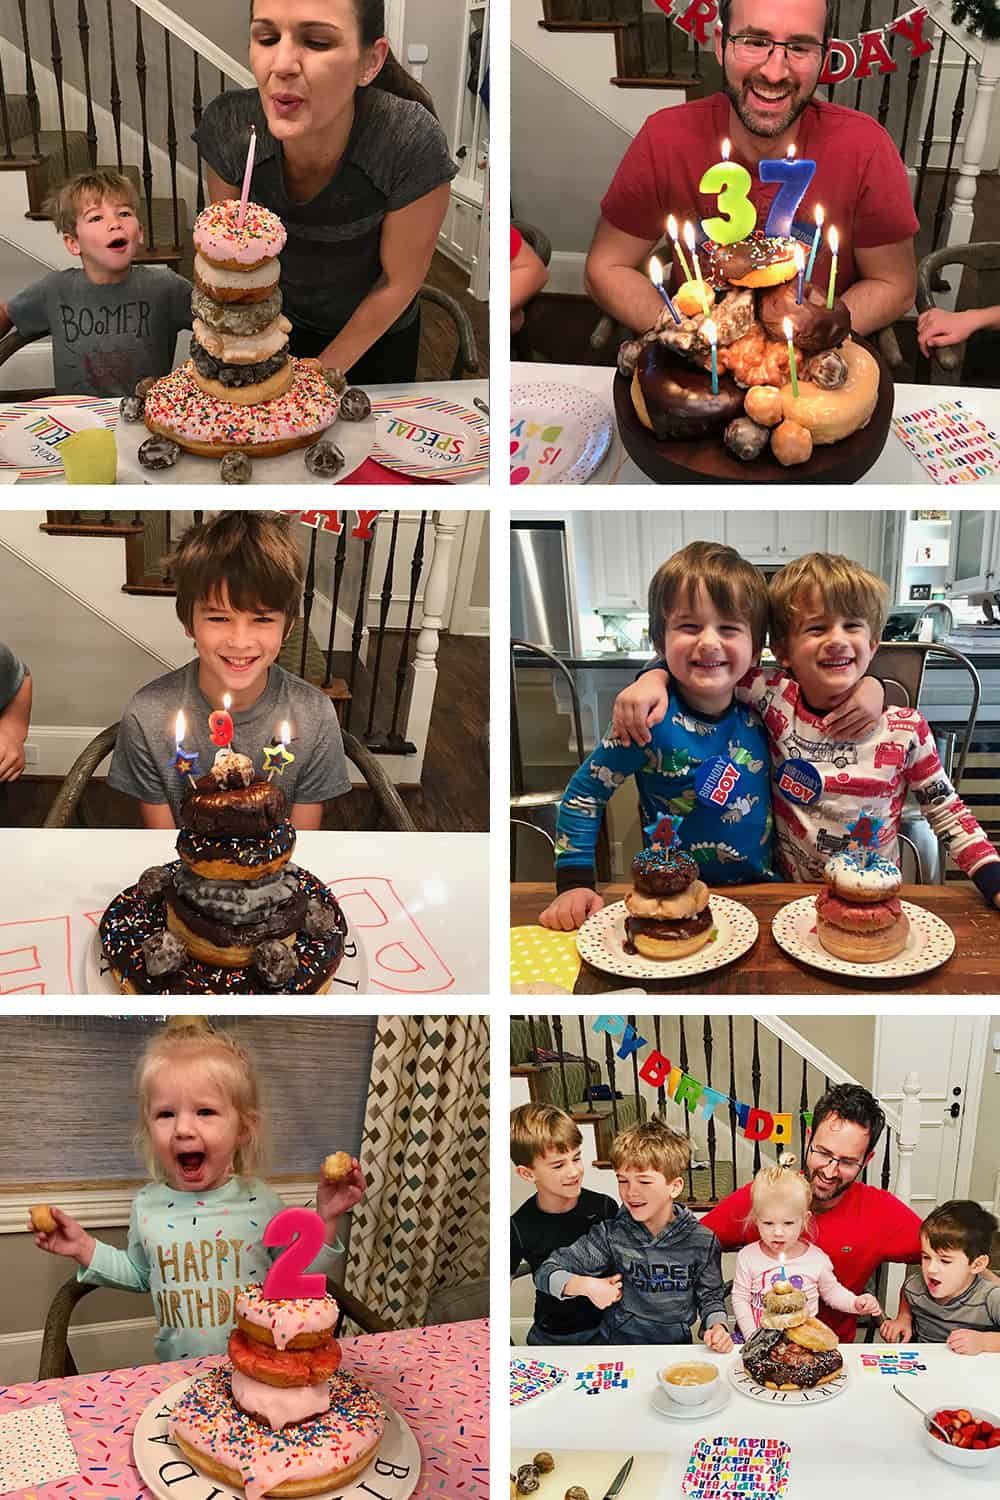 The Brown Family Birthday Donut Collage